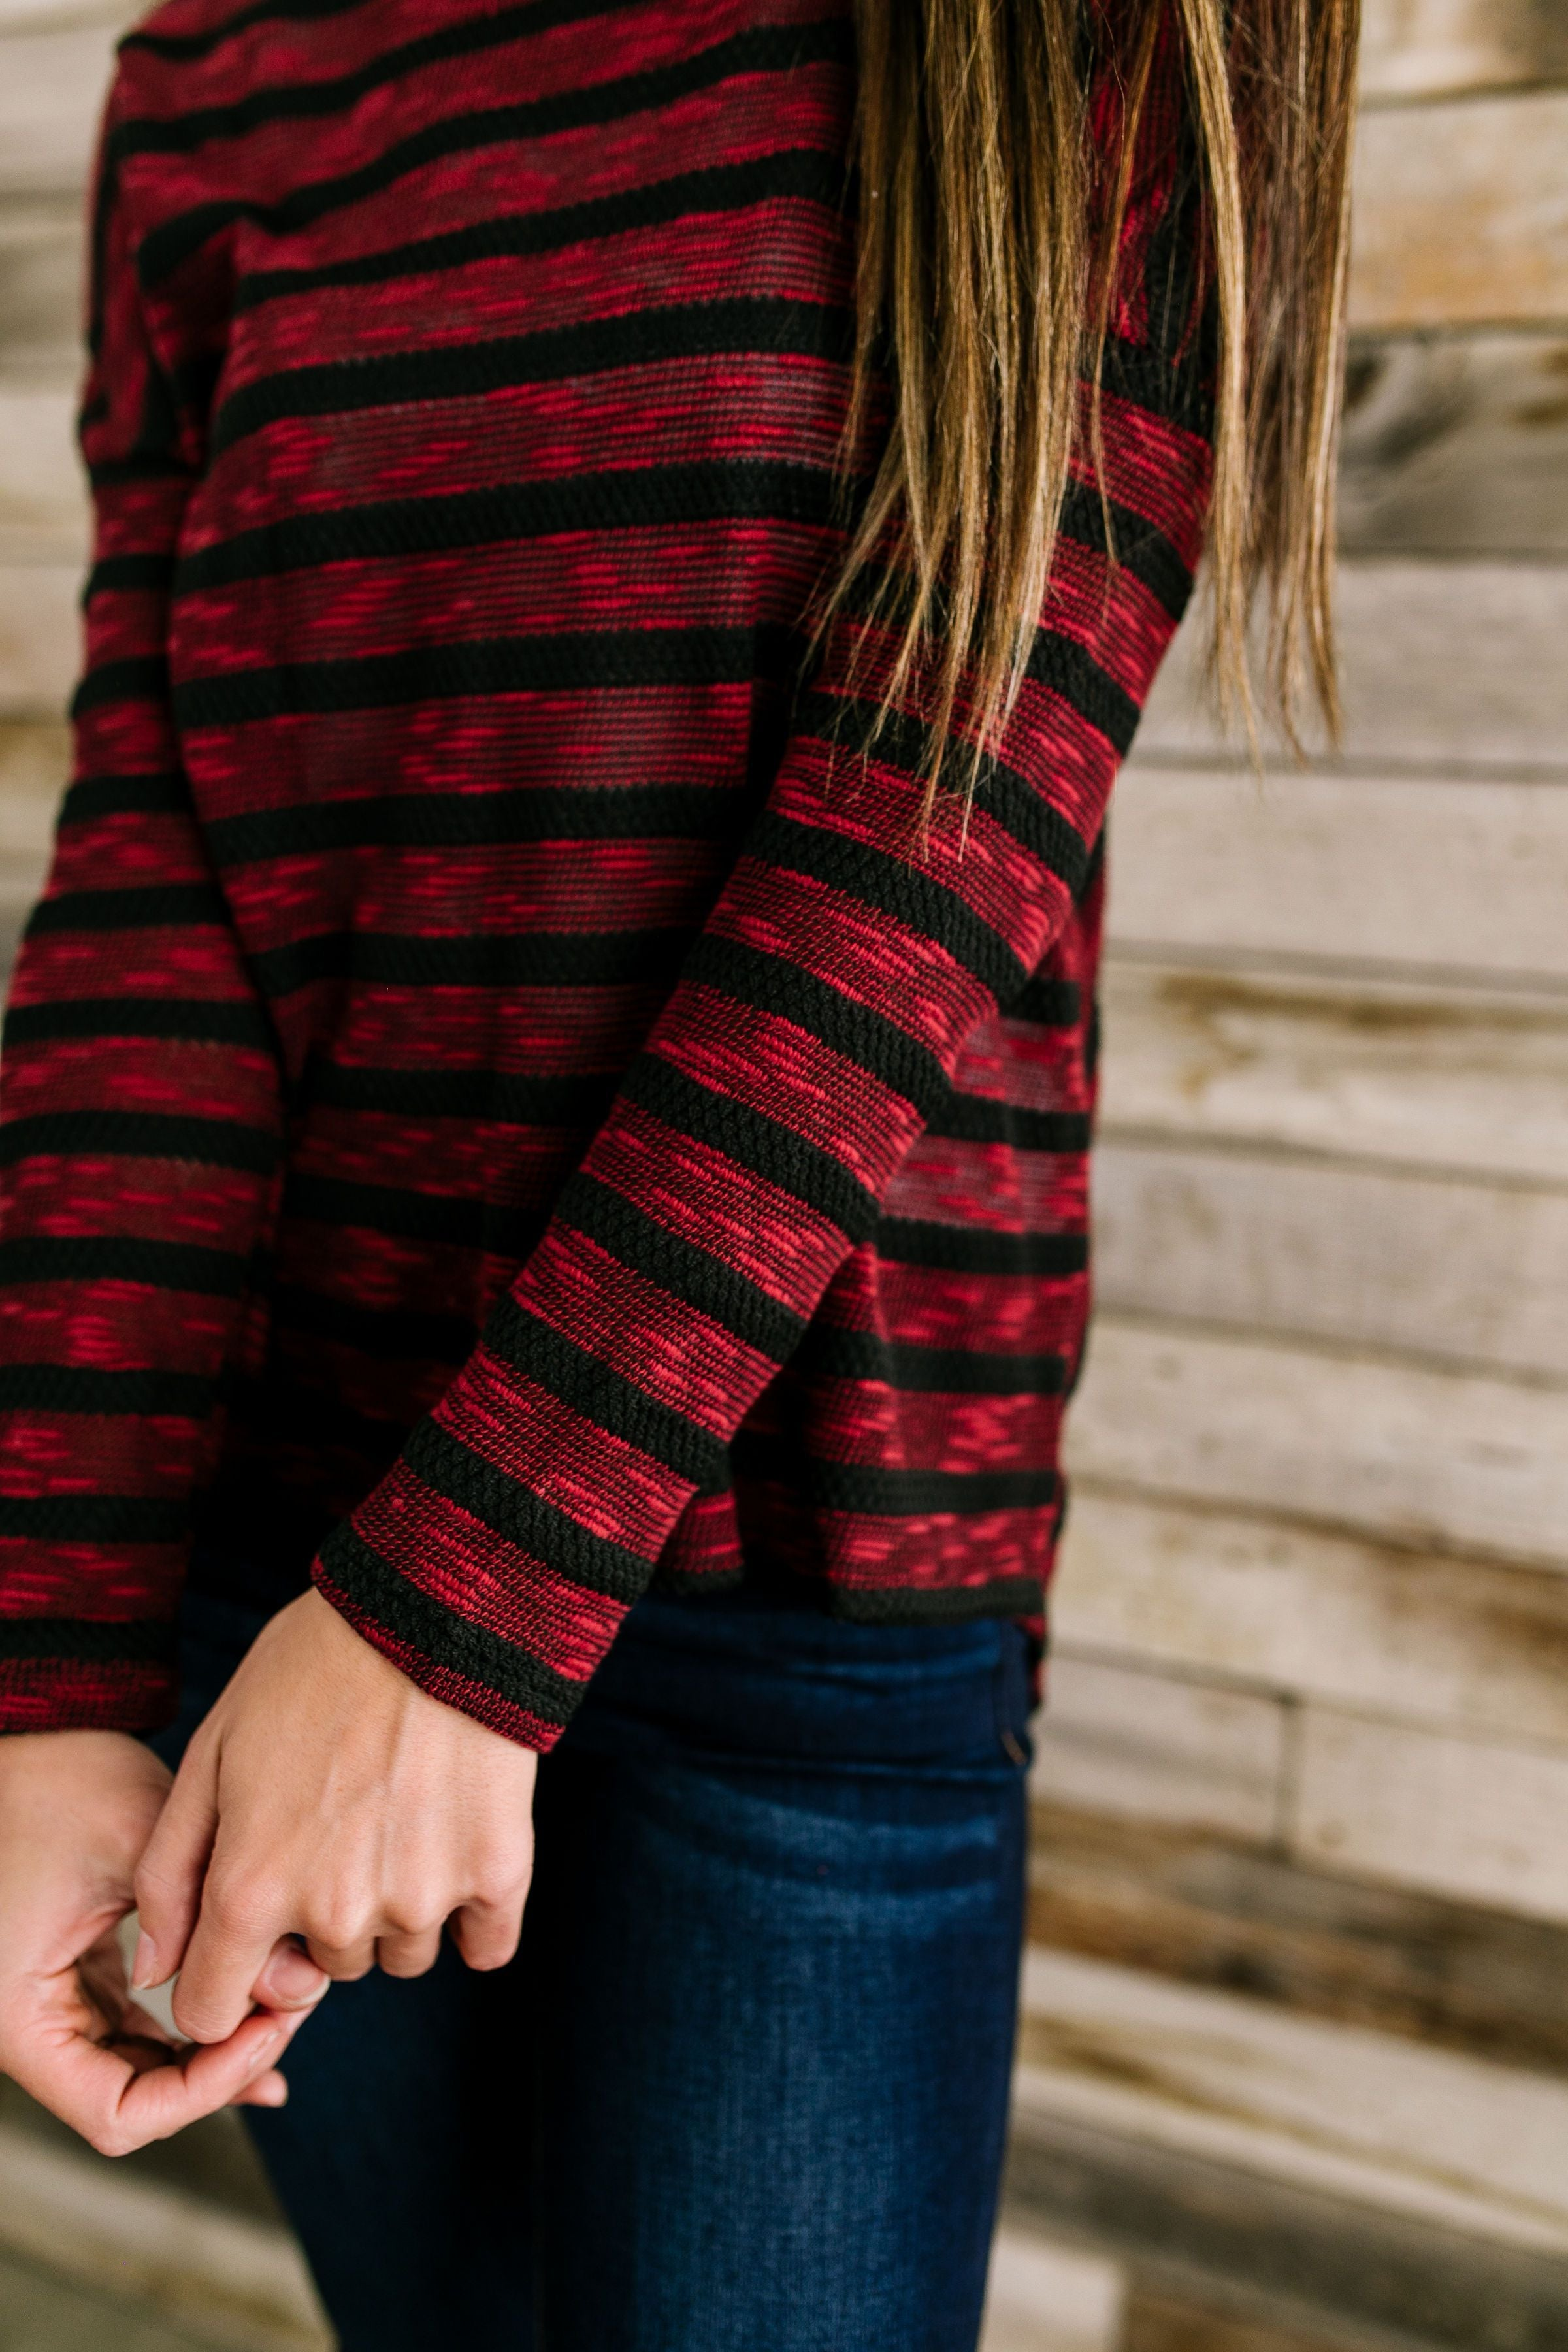 On The Level Striped Top In Burgundy + Black - ALL SALES FINAL